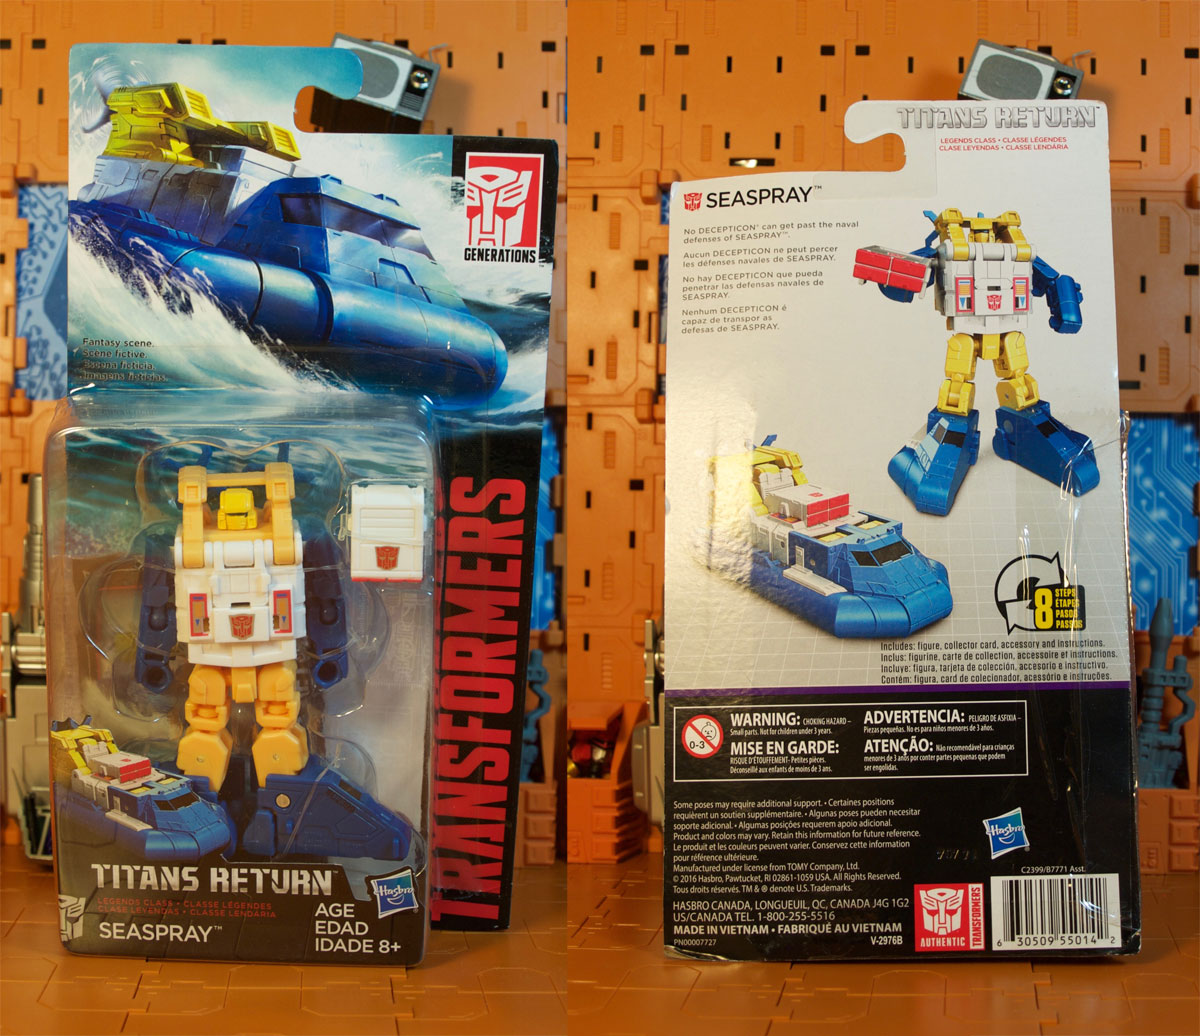 Titans Return Seaspray on card